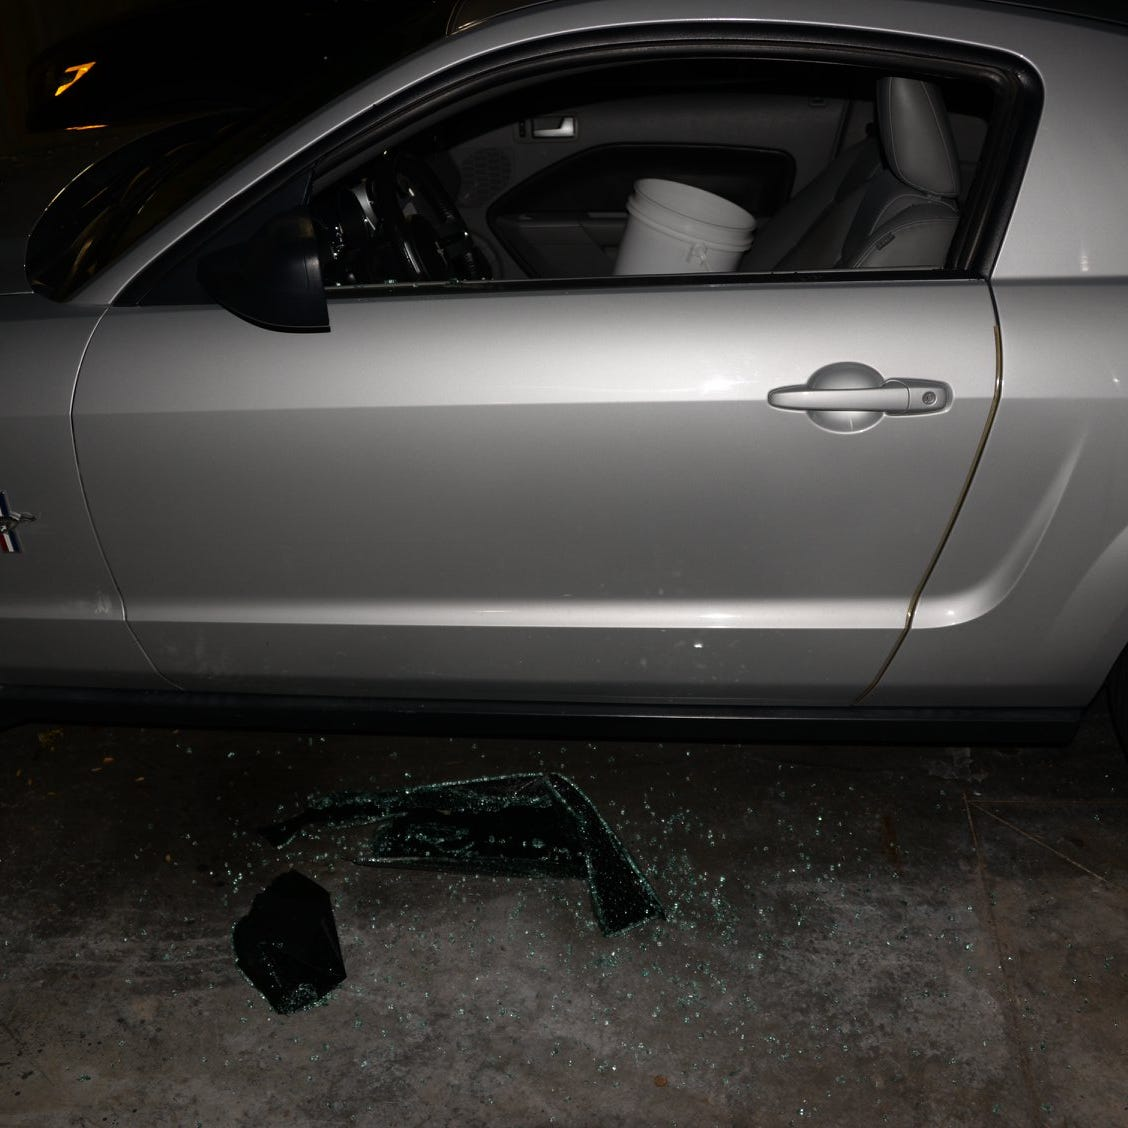 About 30 cars broken into at locked Oak Creek apartment garages